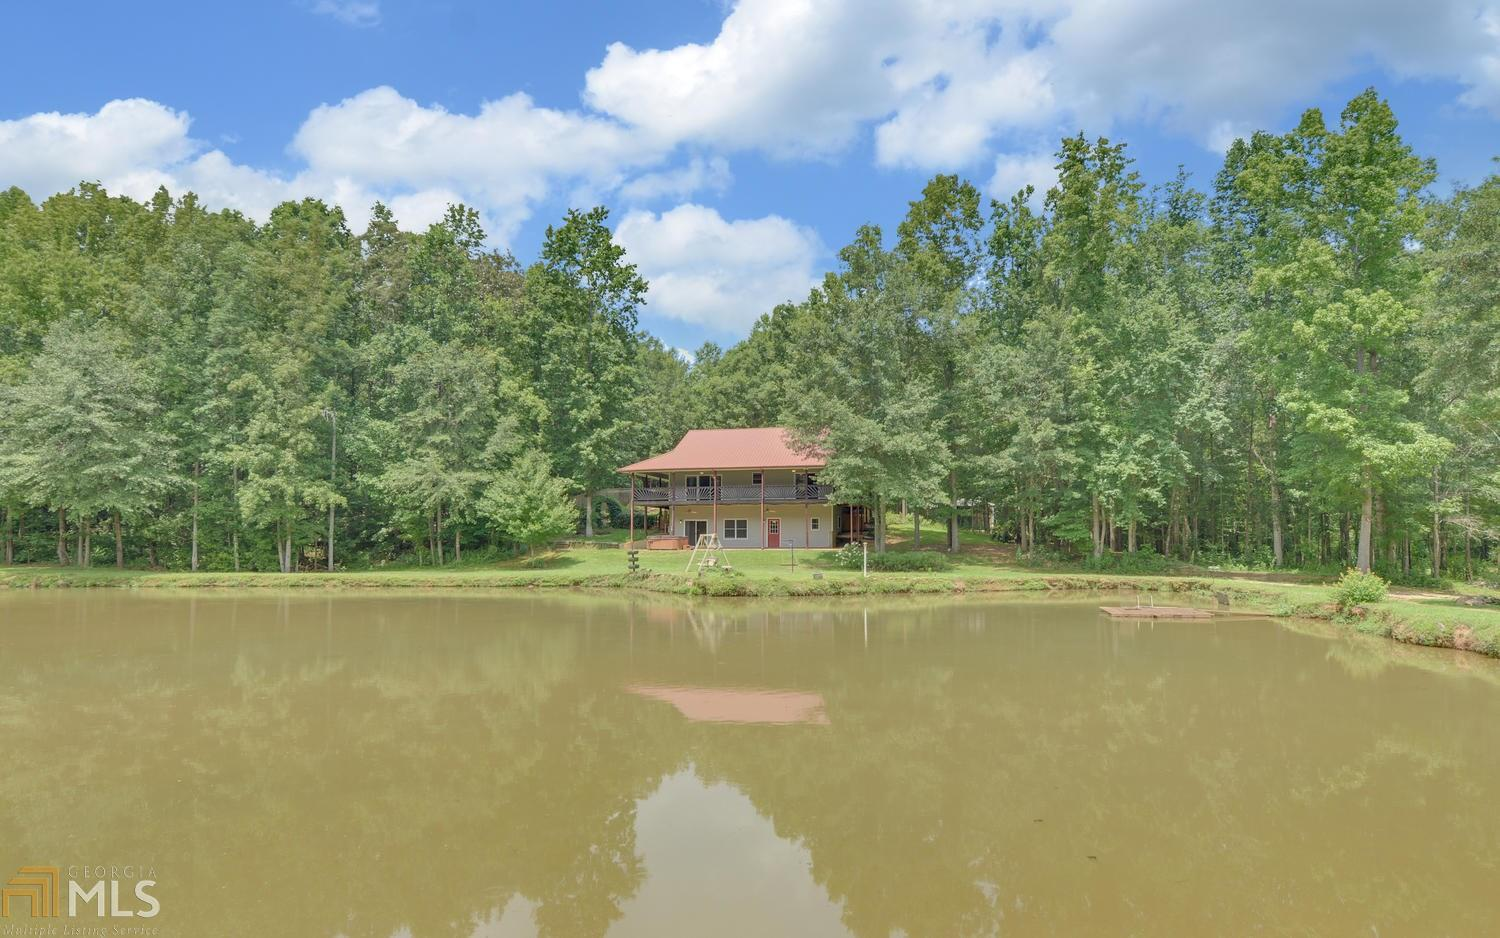 3 bed / 2 full, 1 partial baths Home in Martin for $269,000